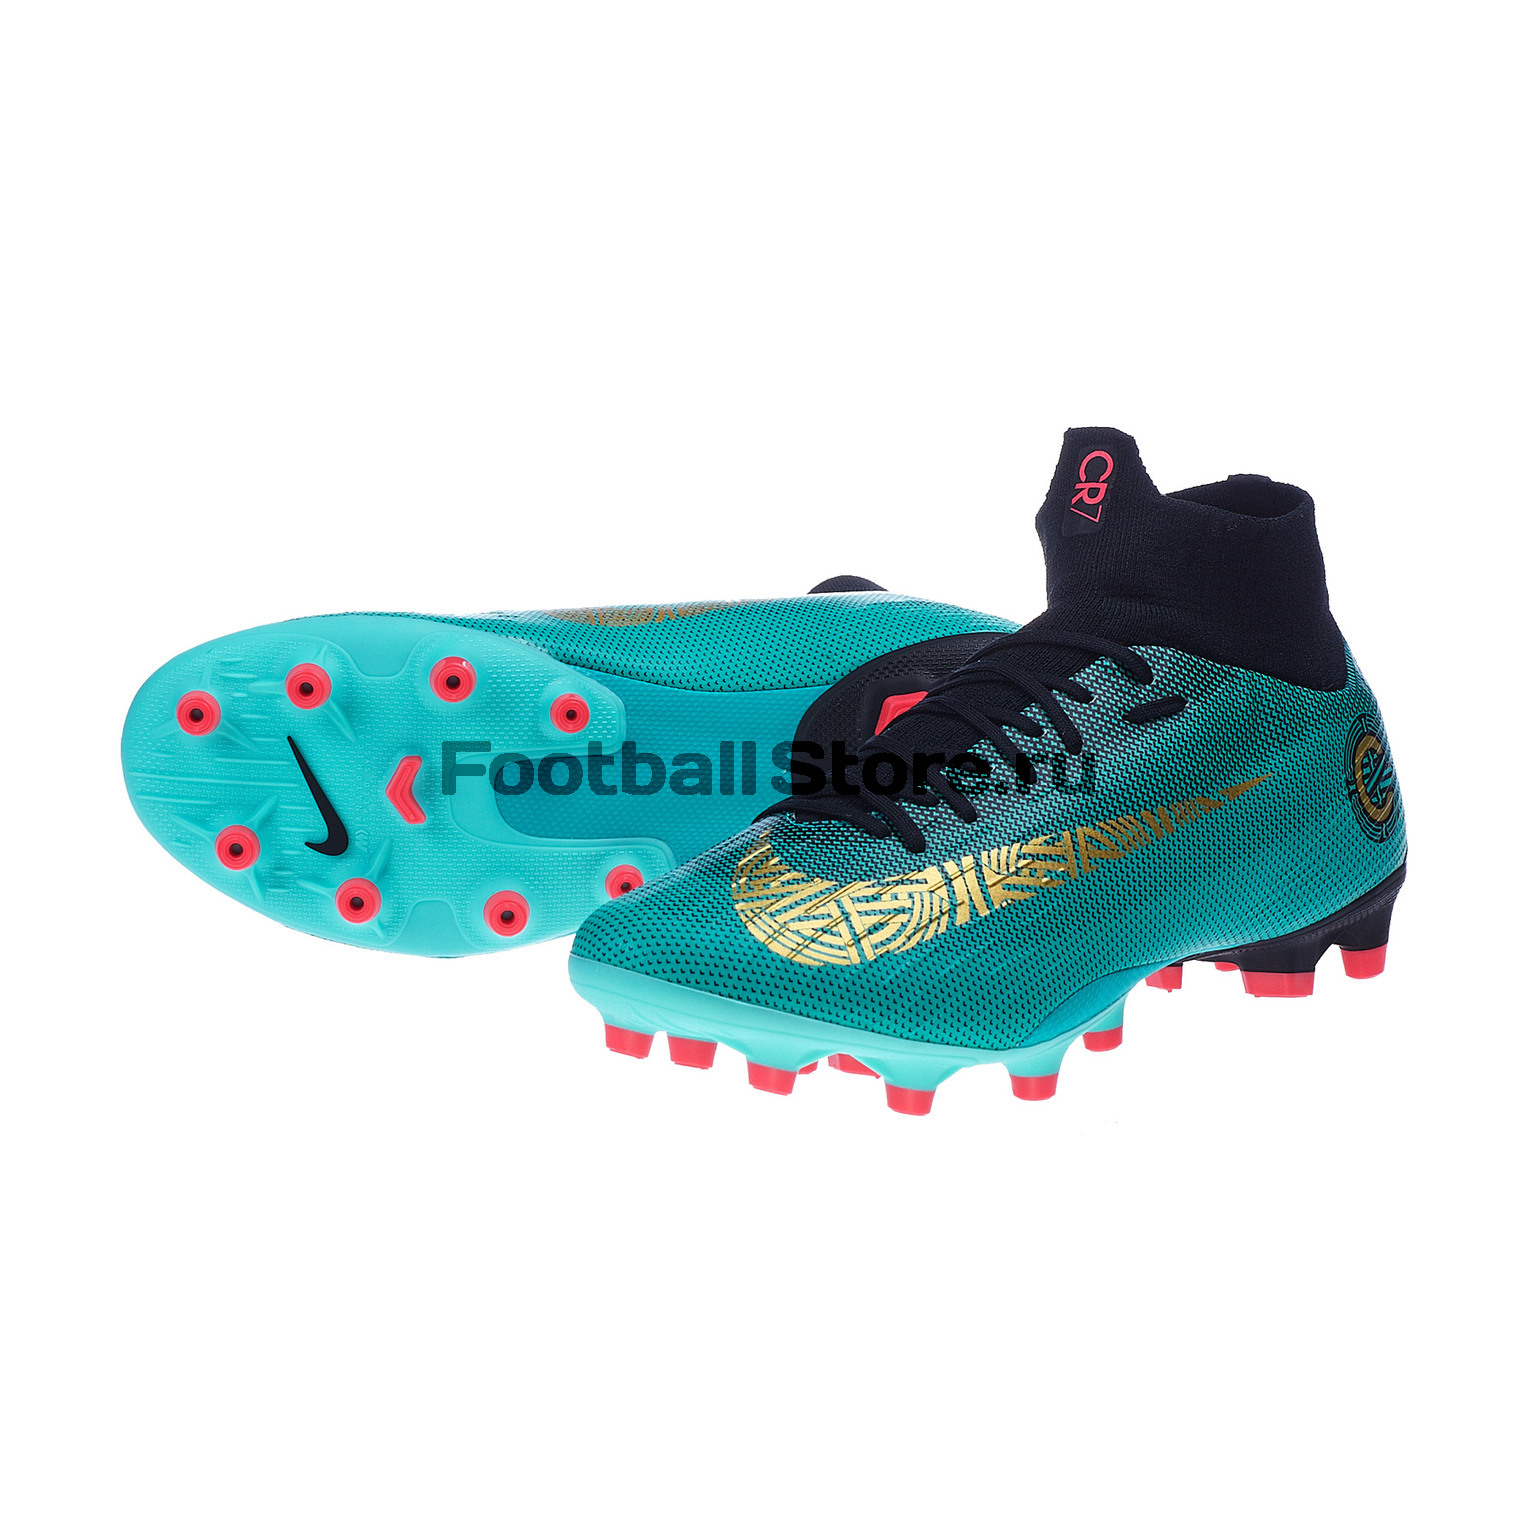 Бутсы Nike SuperFly 6 Pro CR7 AG-Pro AJ3551-390 бутсы nike mercurial victory cr7 indoor